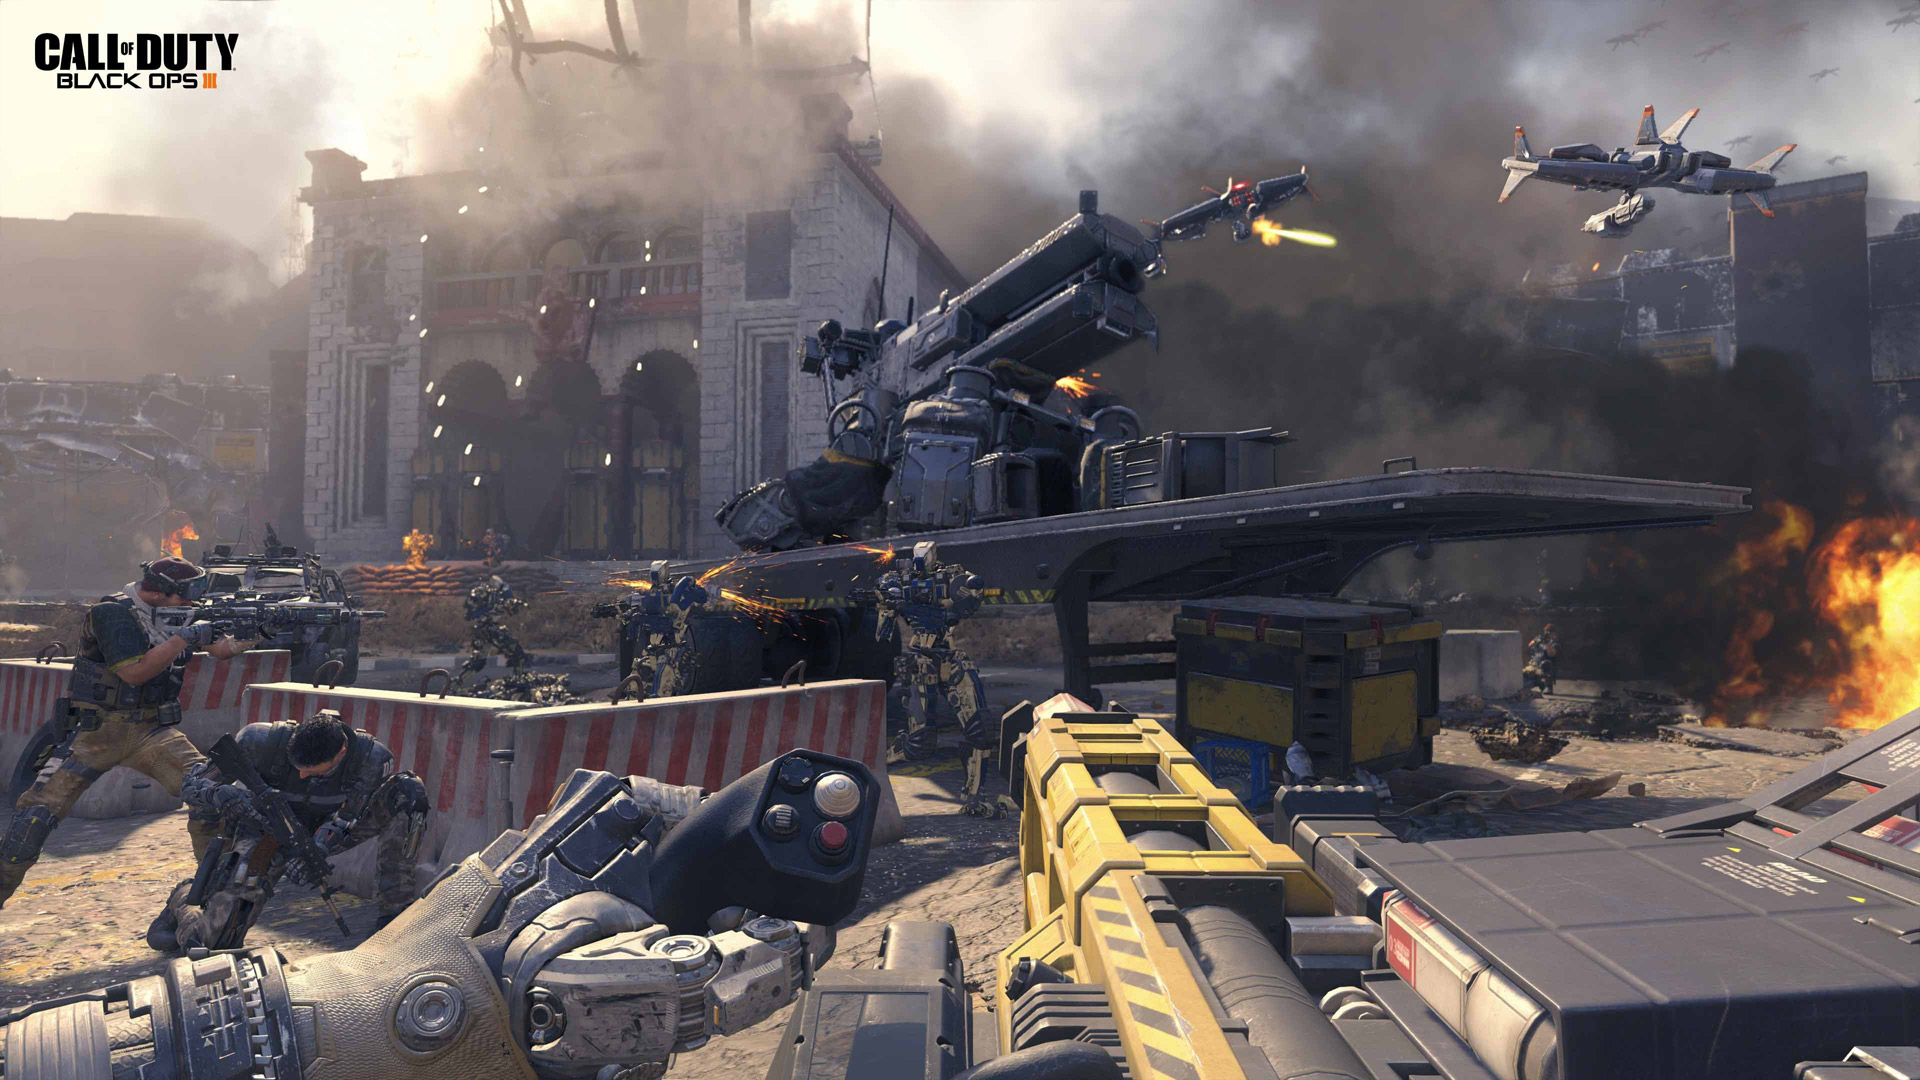 Call Of Duty Black Ops 3 Wallpaper 12